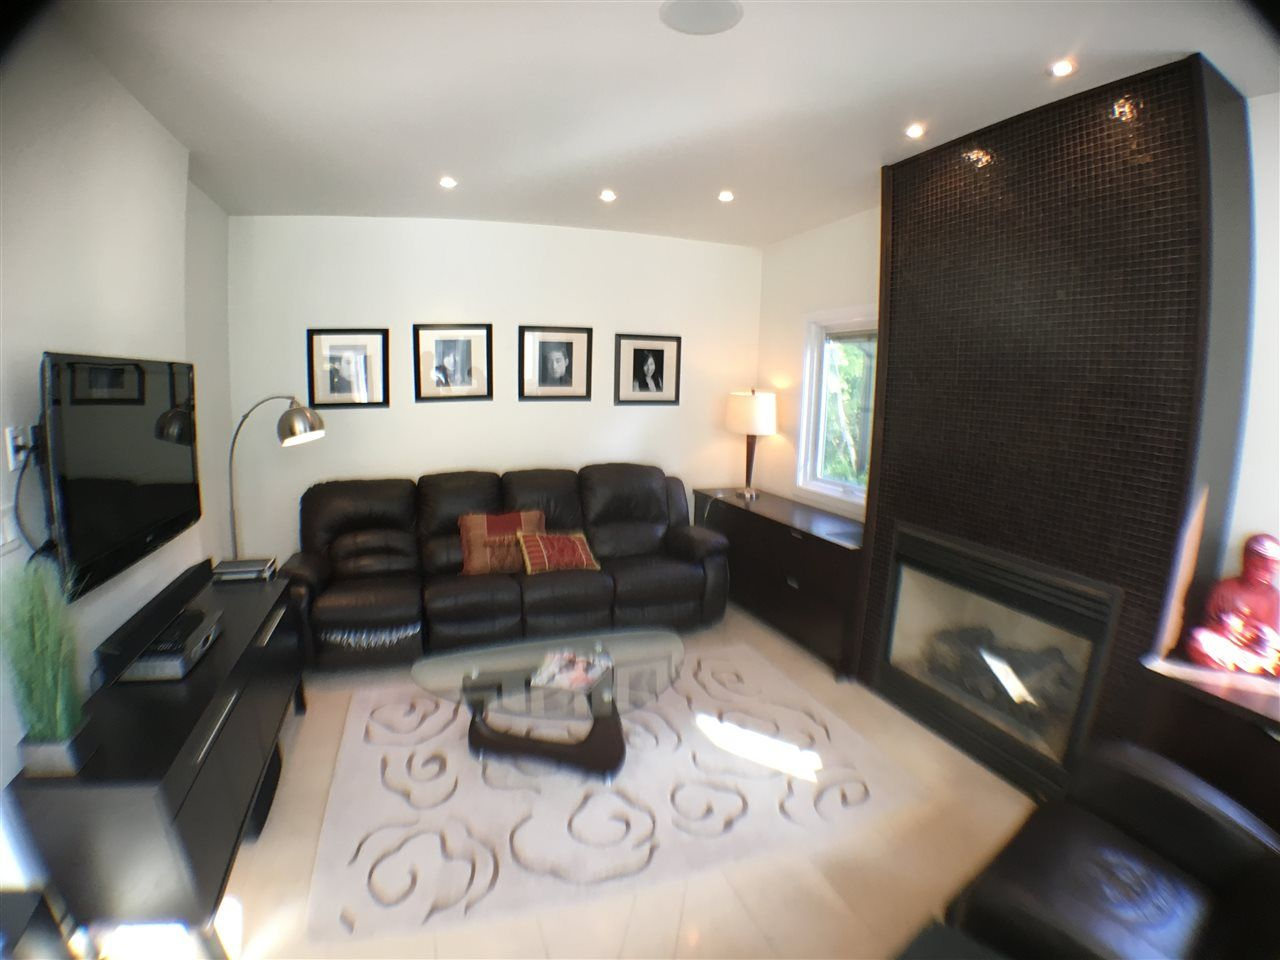 Photo 11: Photos: 1268 NANTON Avenue in Vancouver: Shaughnessy House for sale (Vancouver West)  : MLS®# R2209391